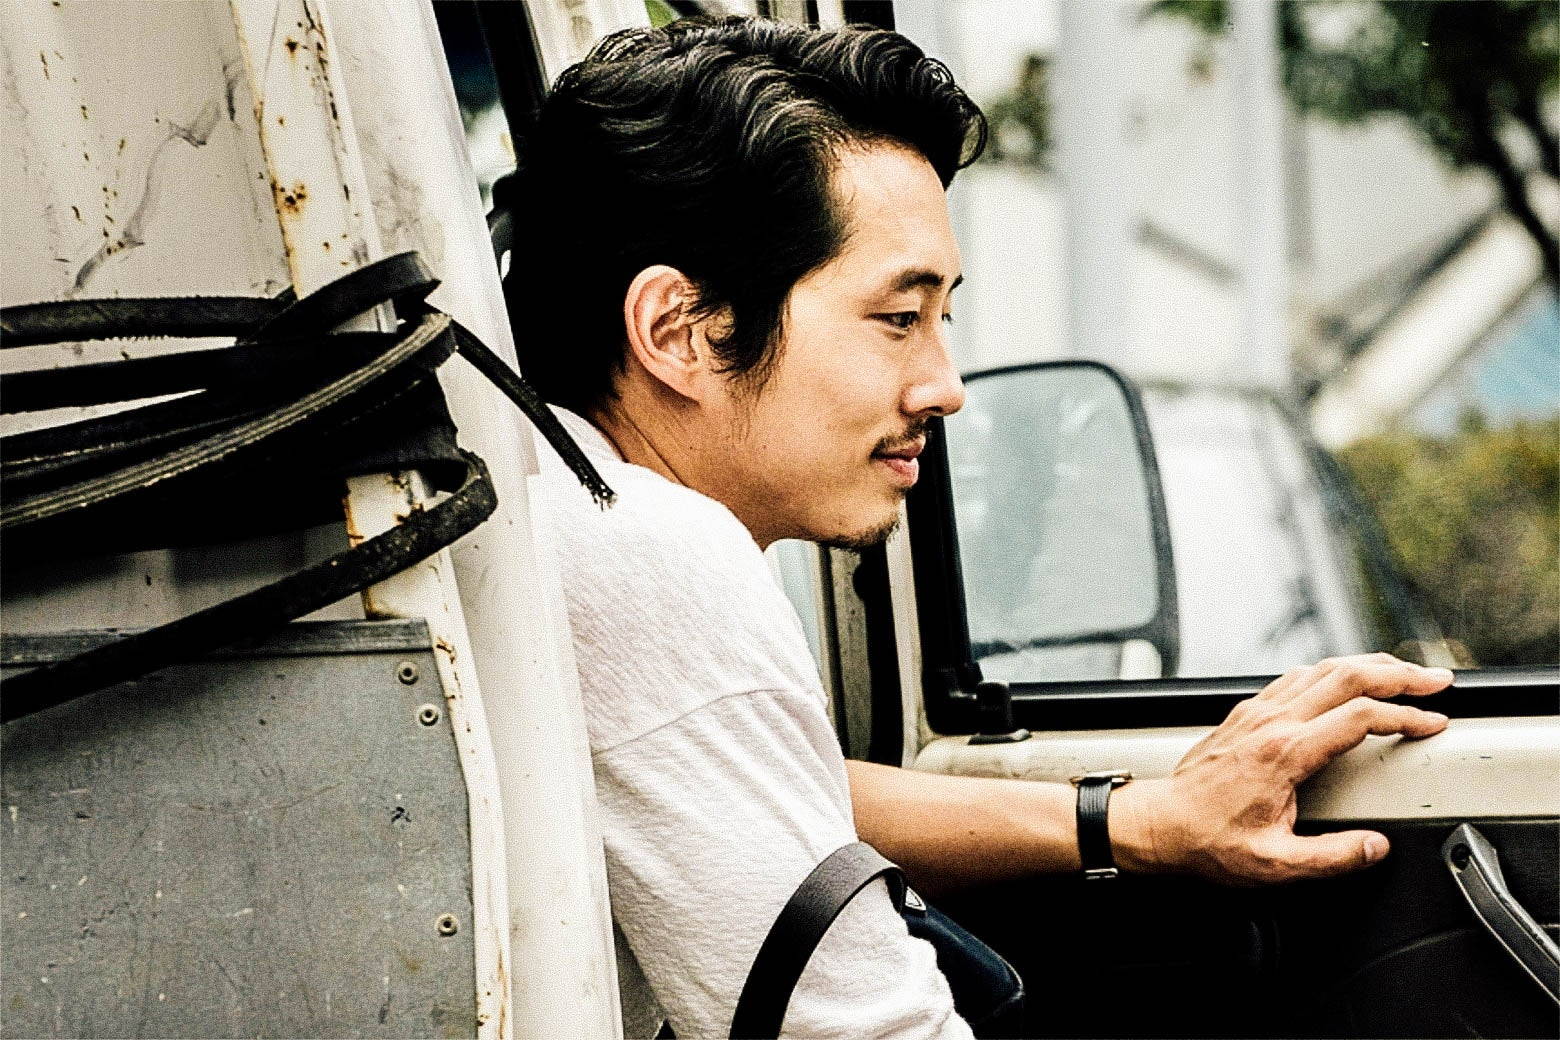 Steven Yeun in Burning.